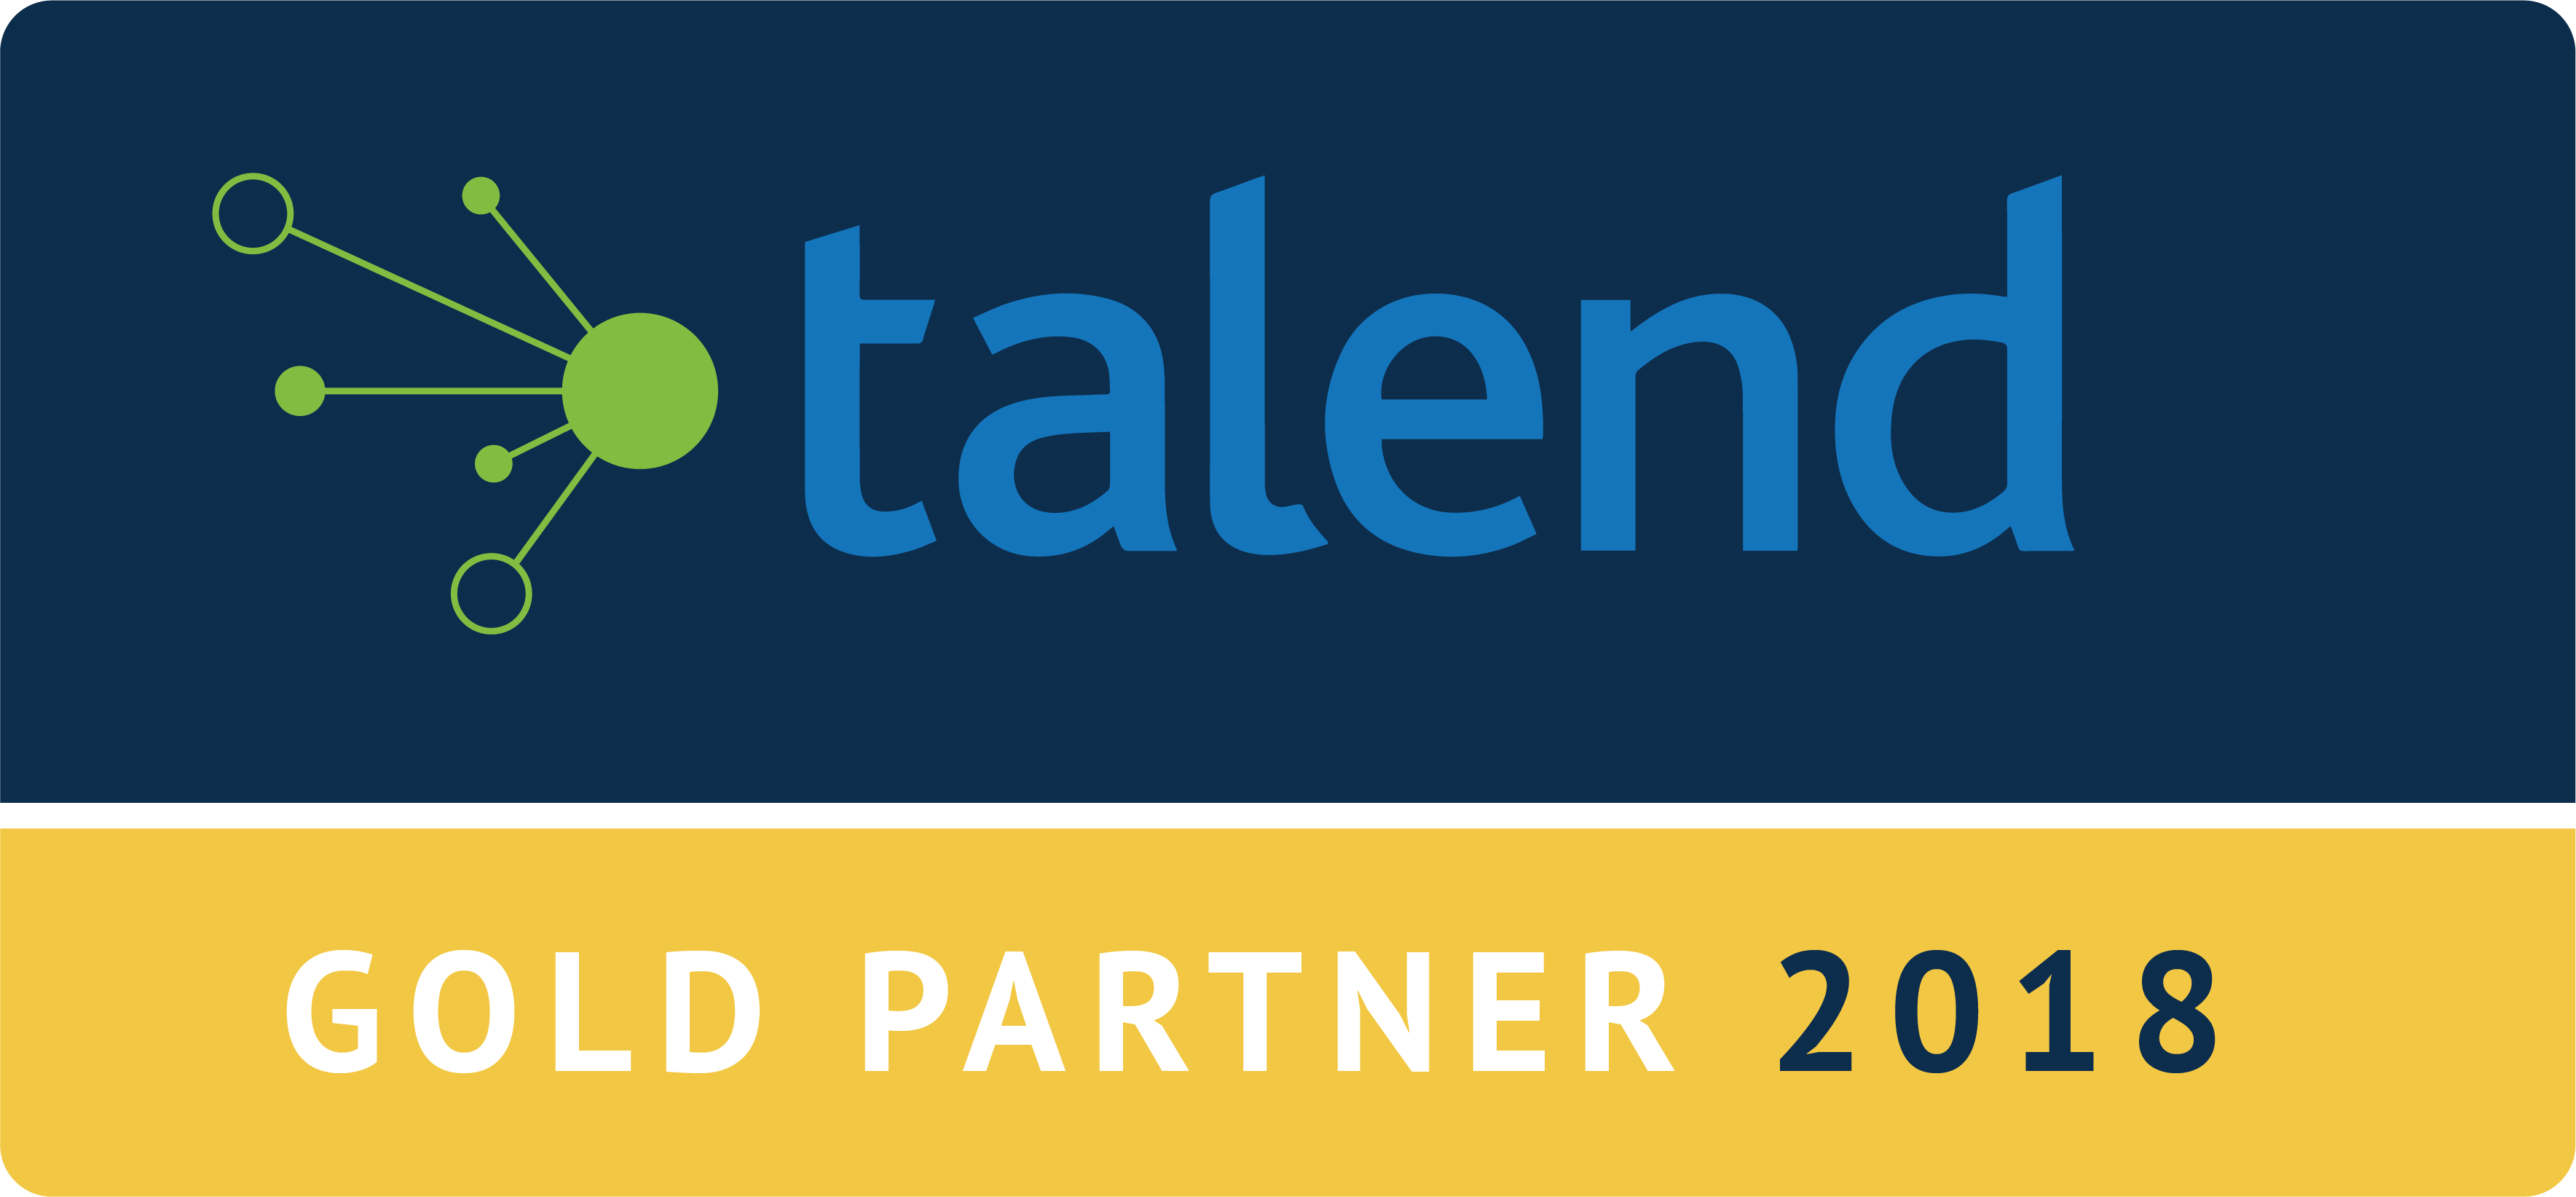 The unbelievable Machine Company is talend Gold Partner 2018